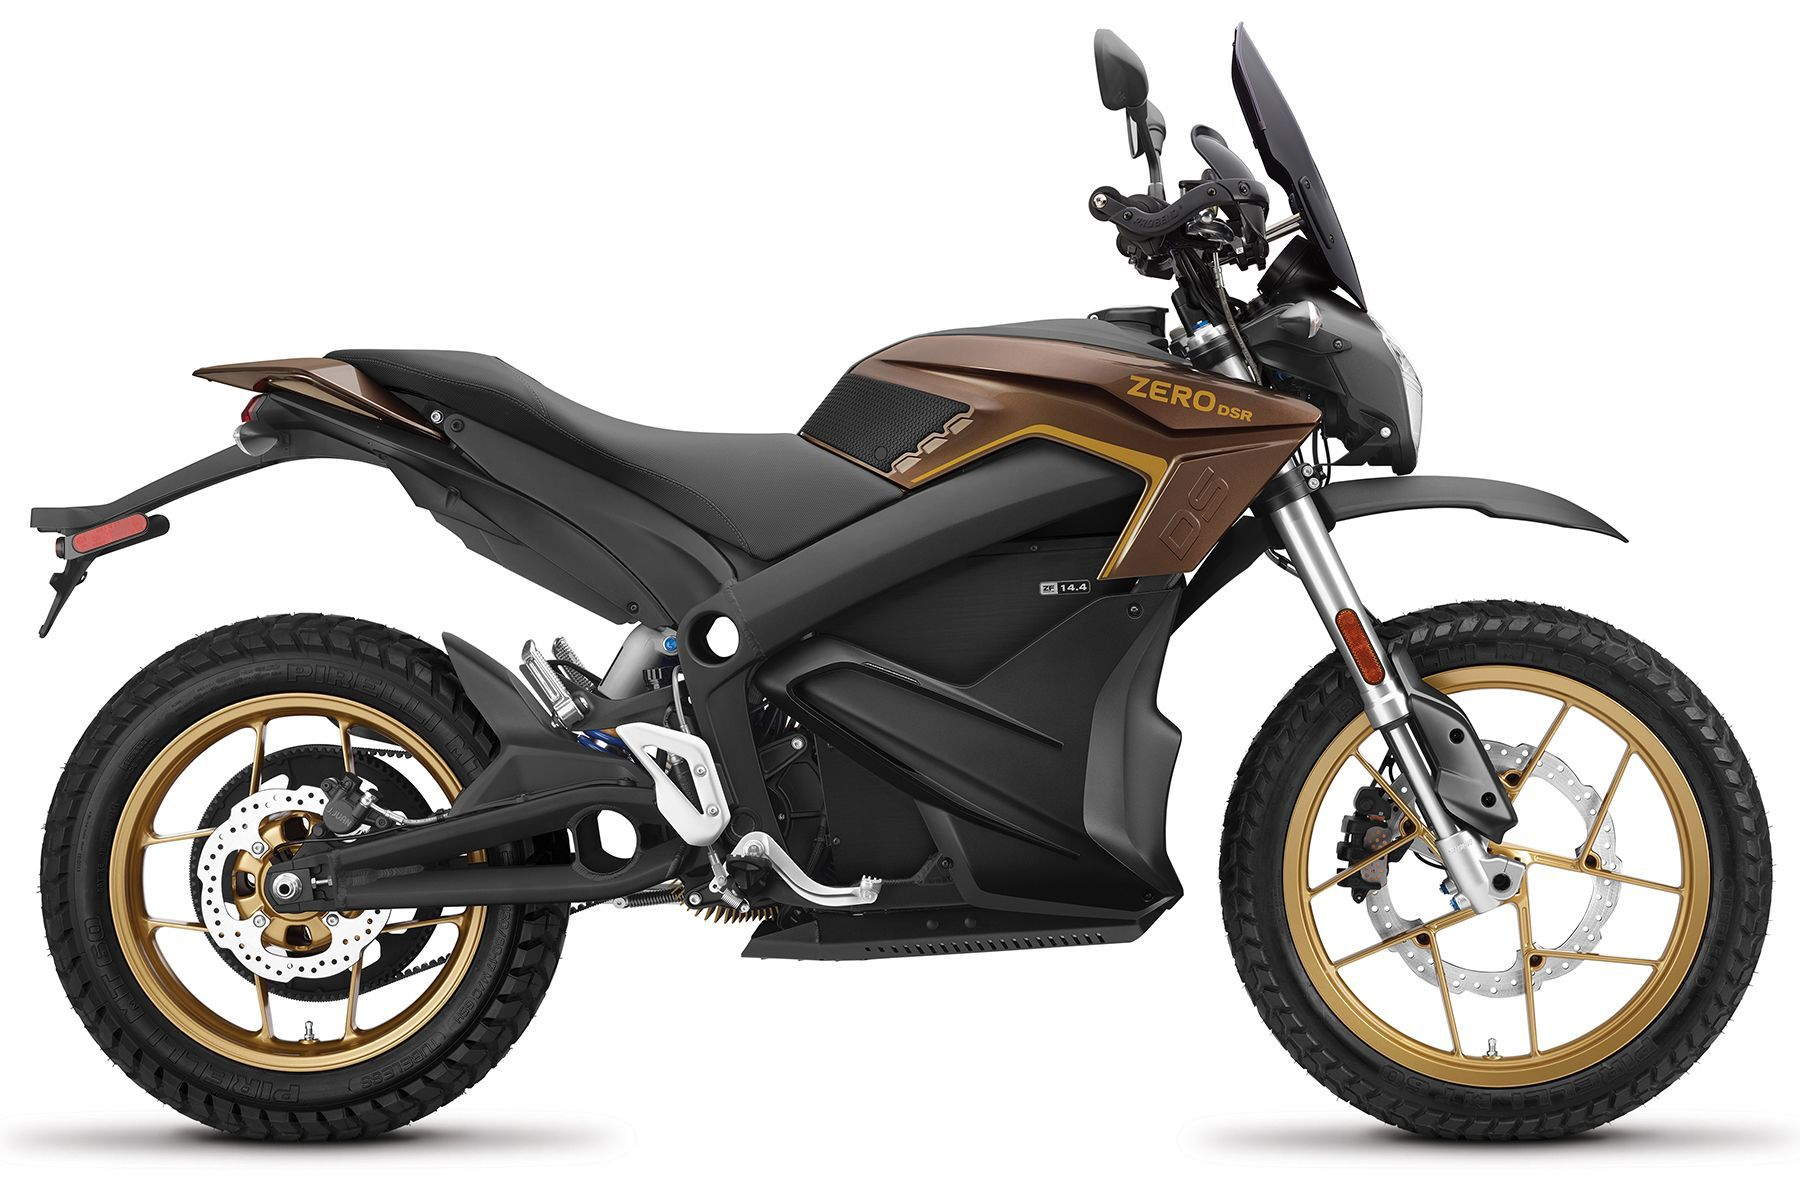 How To Put Your Money Where Your Mouth Is 20 Eco Friendly Products For Home Garden And Dr Electric Motorcycle For Sale Electric Motorbike Electric Motorcycle